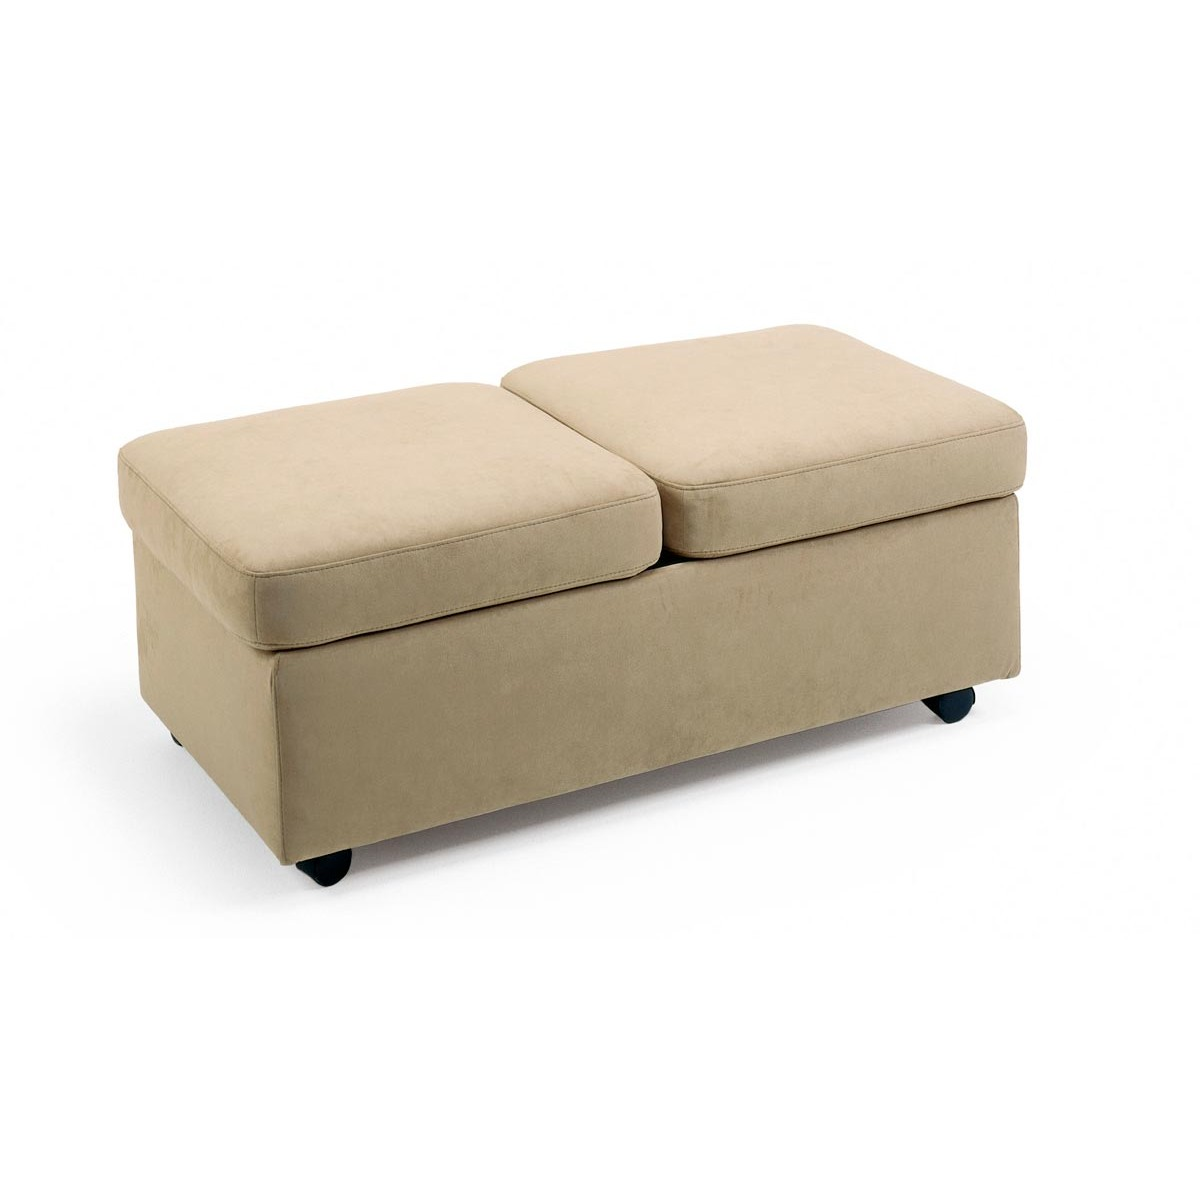 Double Chair With Ottoman Stressless Double Ottoman From 950 00 By Stressless